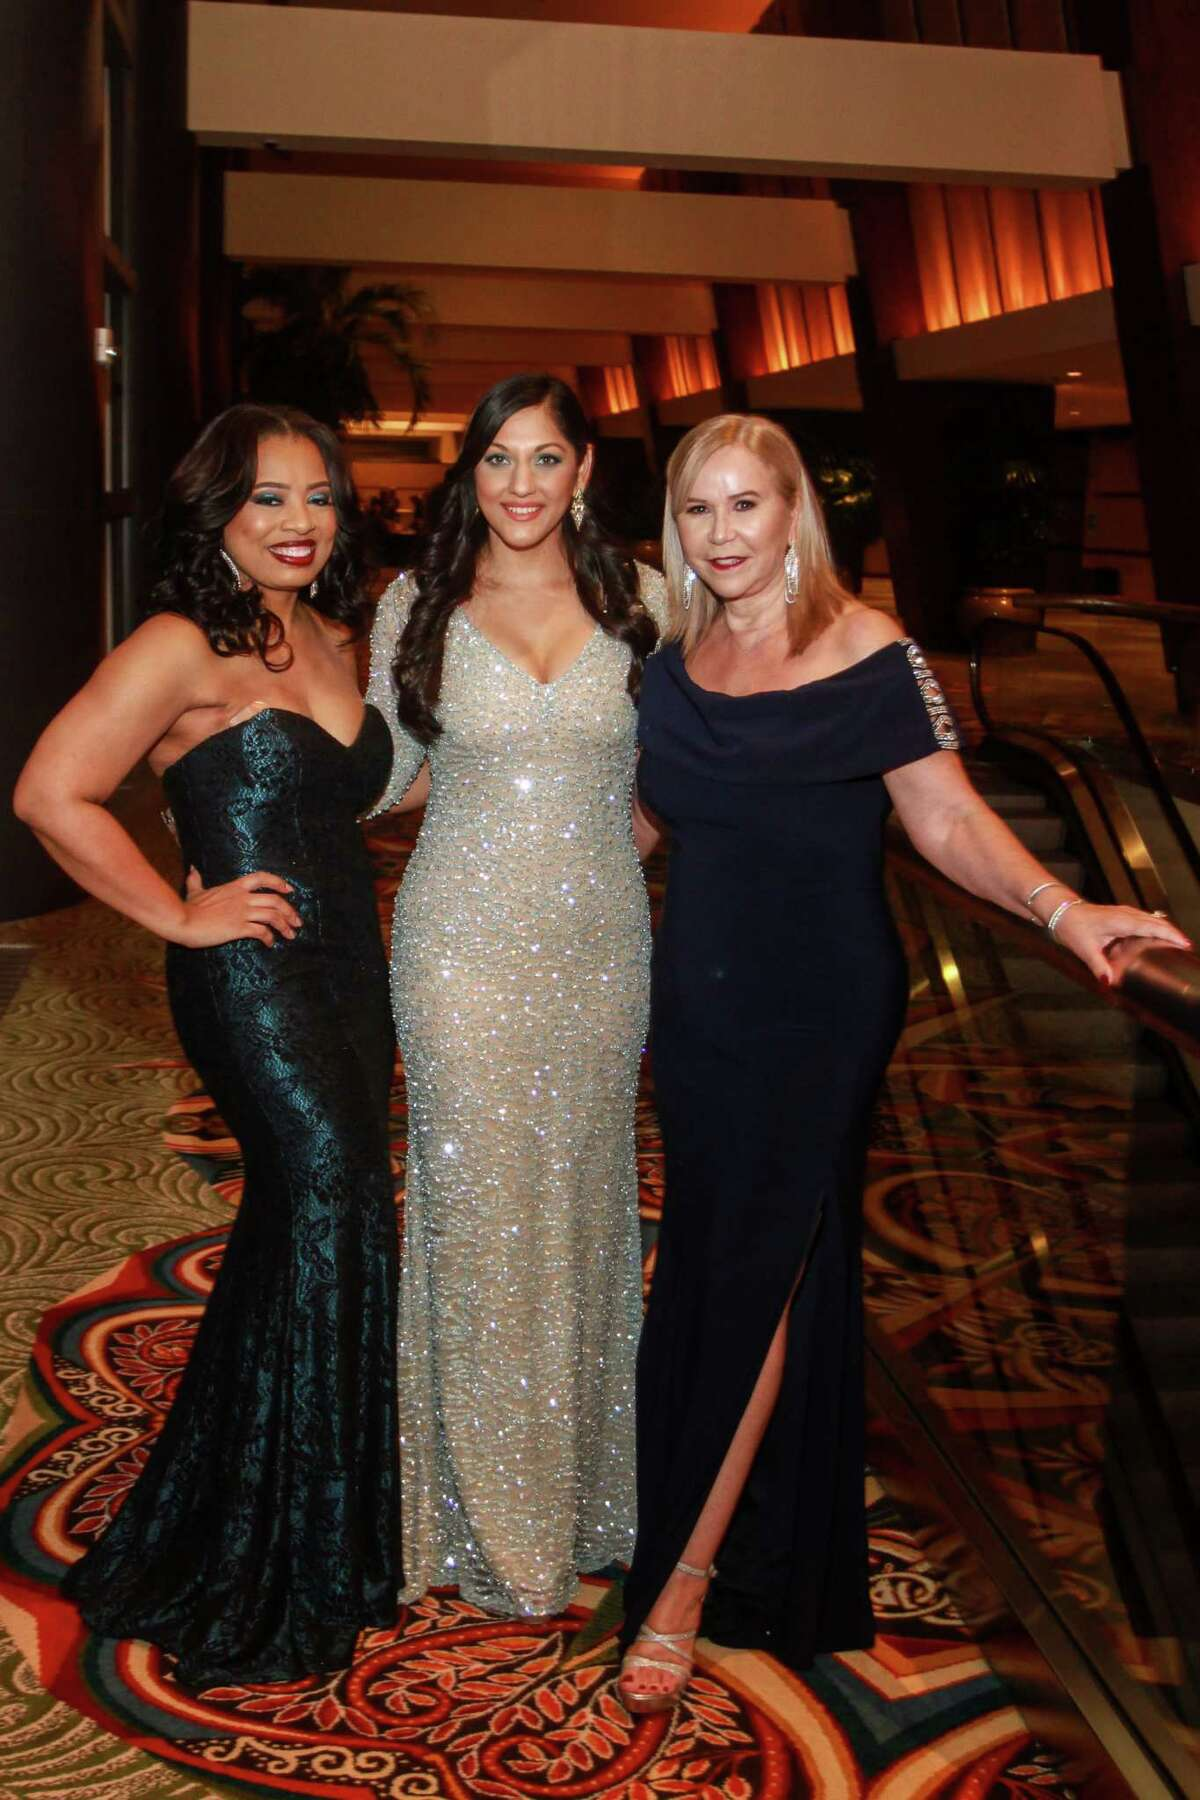 Chairs Shawntell McWilliams, from left, Dr. Sippi Khurana and Cyndy Garza Roberts at the 2019 Crystal Winter Ball.